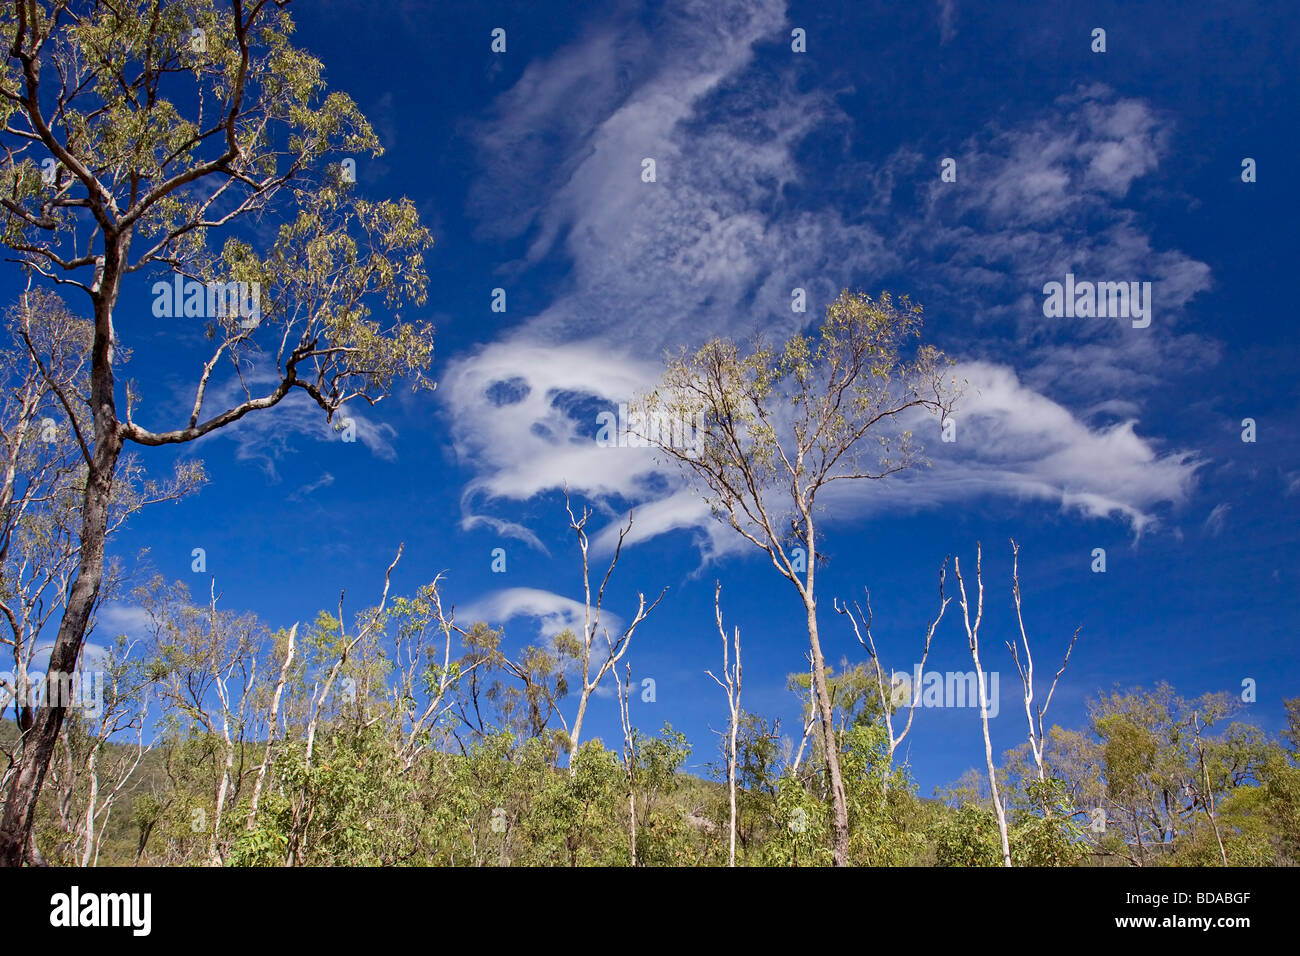 Ghost cloud - Stock Image